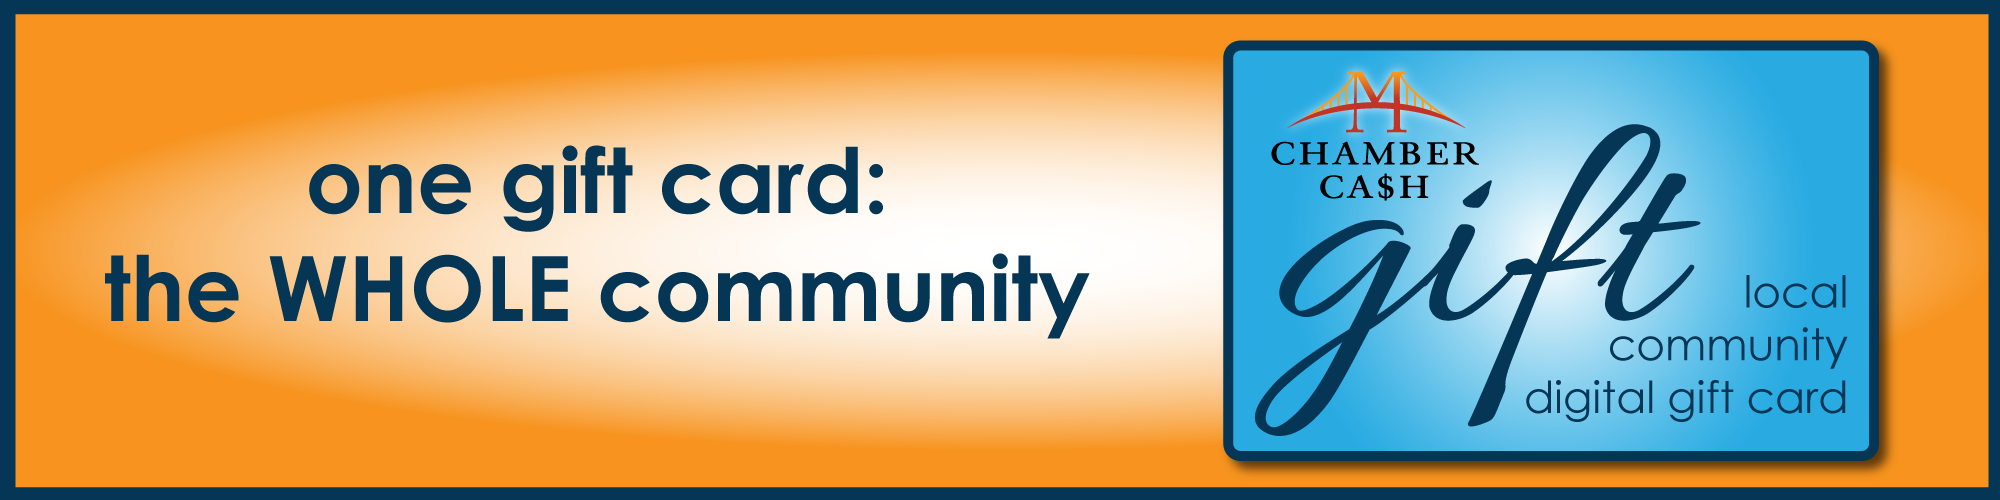 madison community gift card